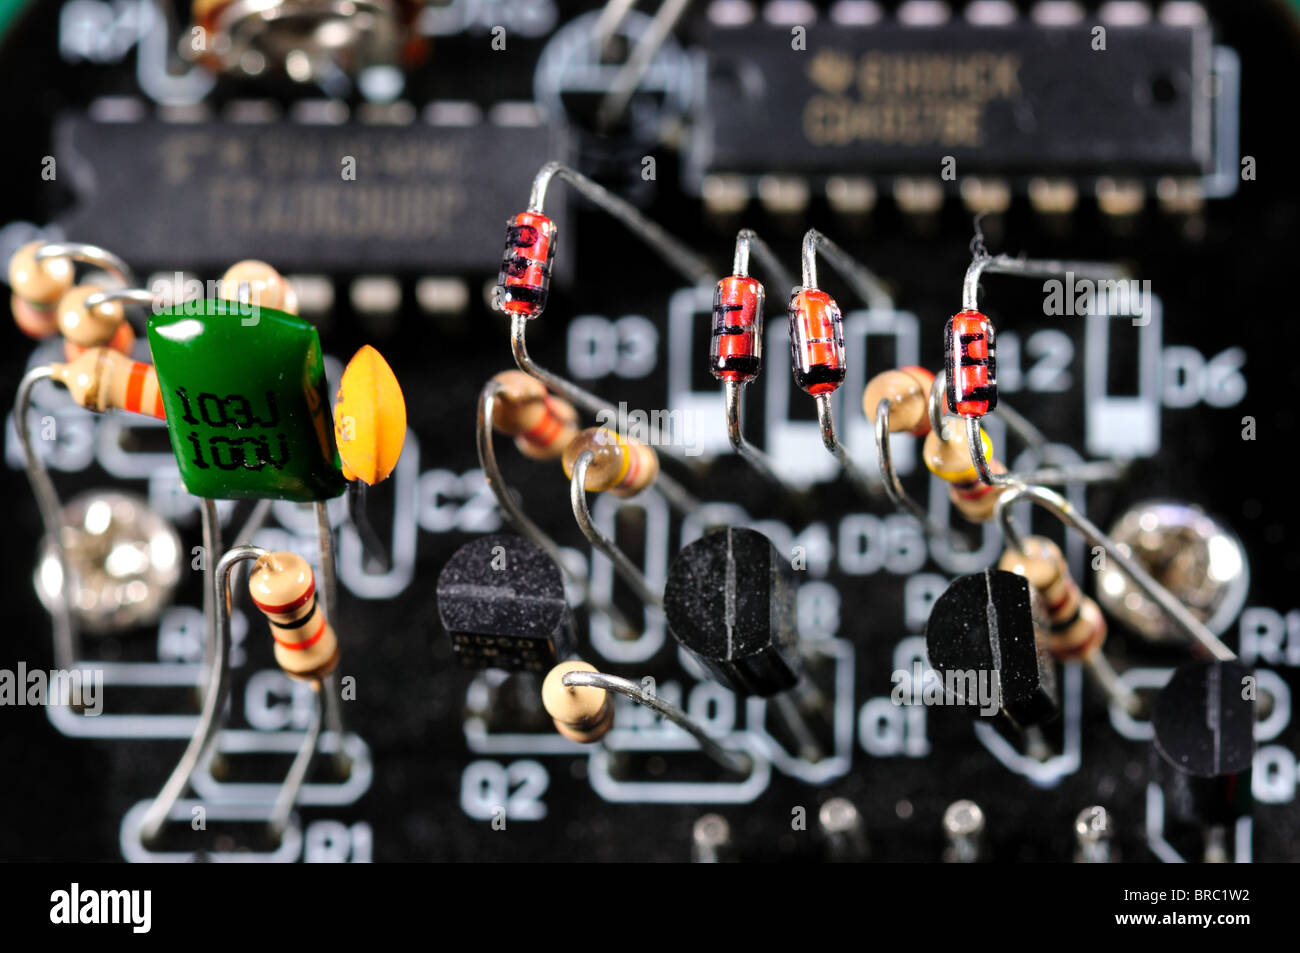 Closeup of an electronic board with components. - Stock Image